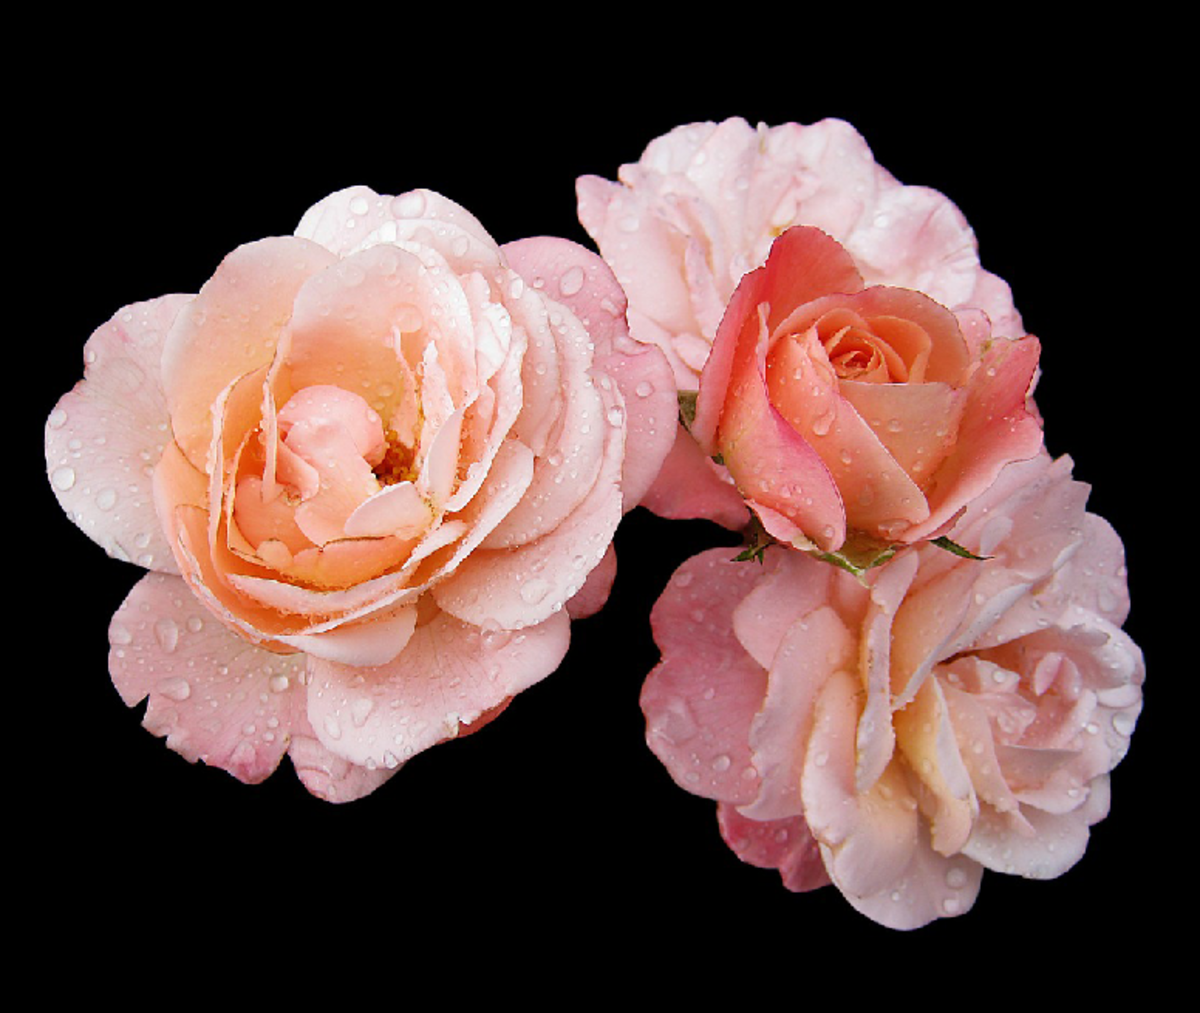 Picture of Peach Orange Roses with Dewdrops